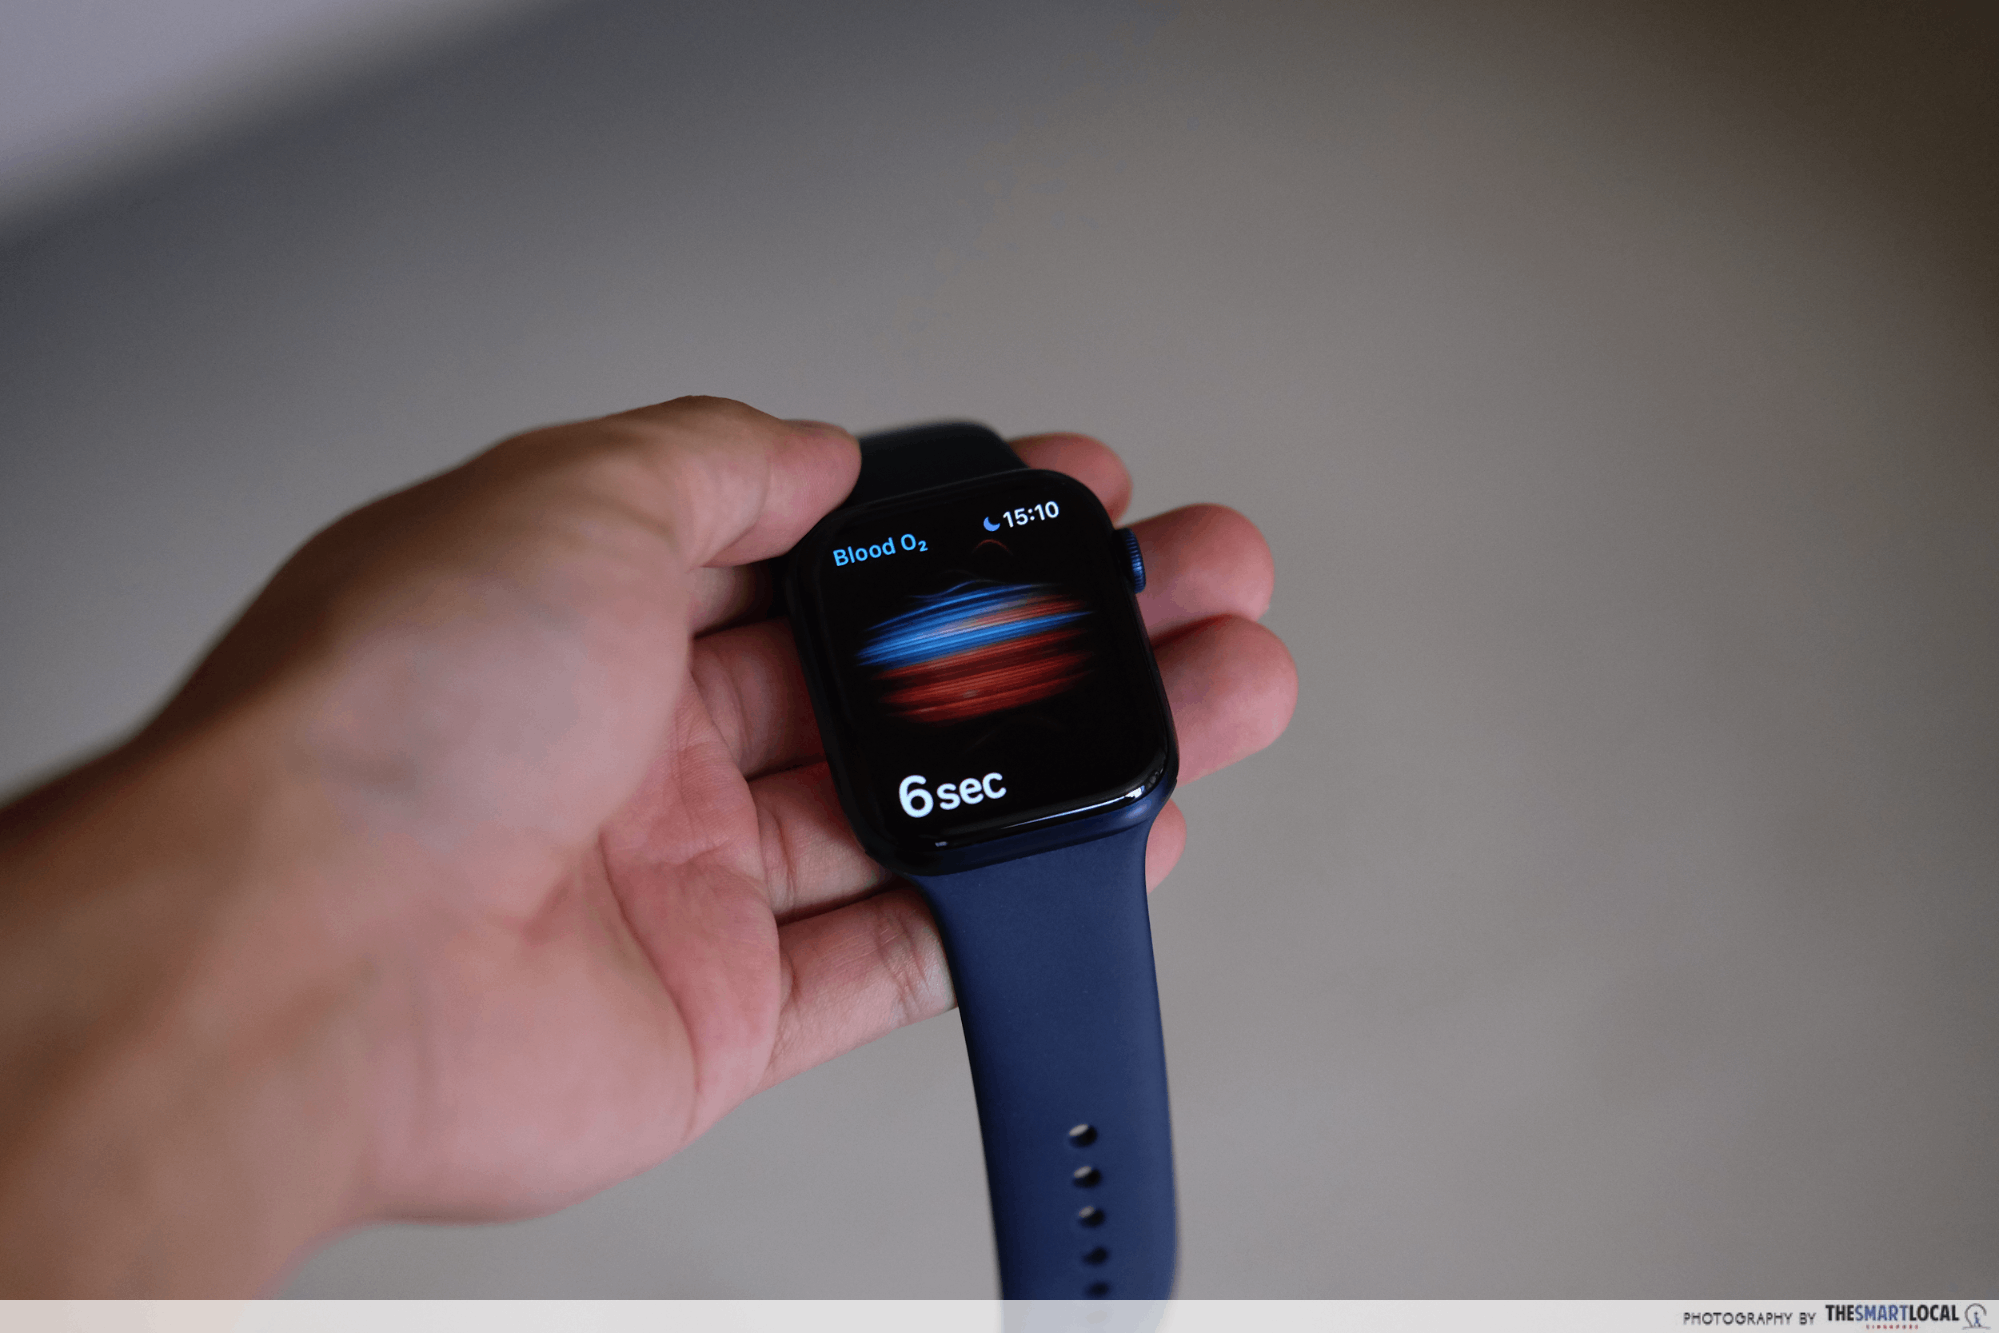 apple watch singapore 2020 price guide - blood oxygen